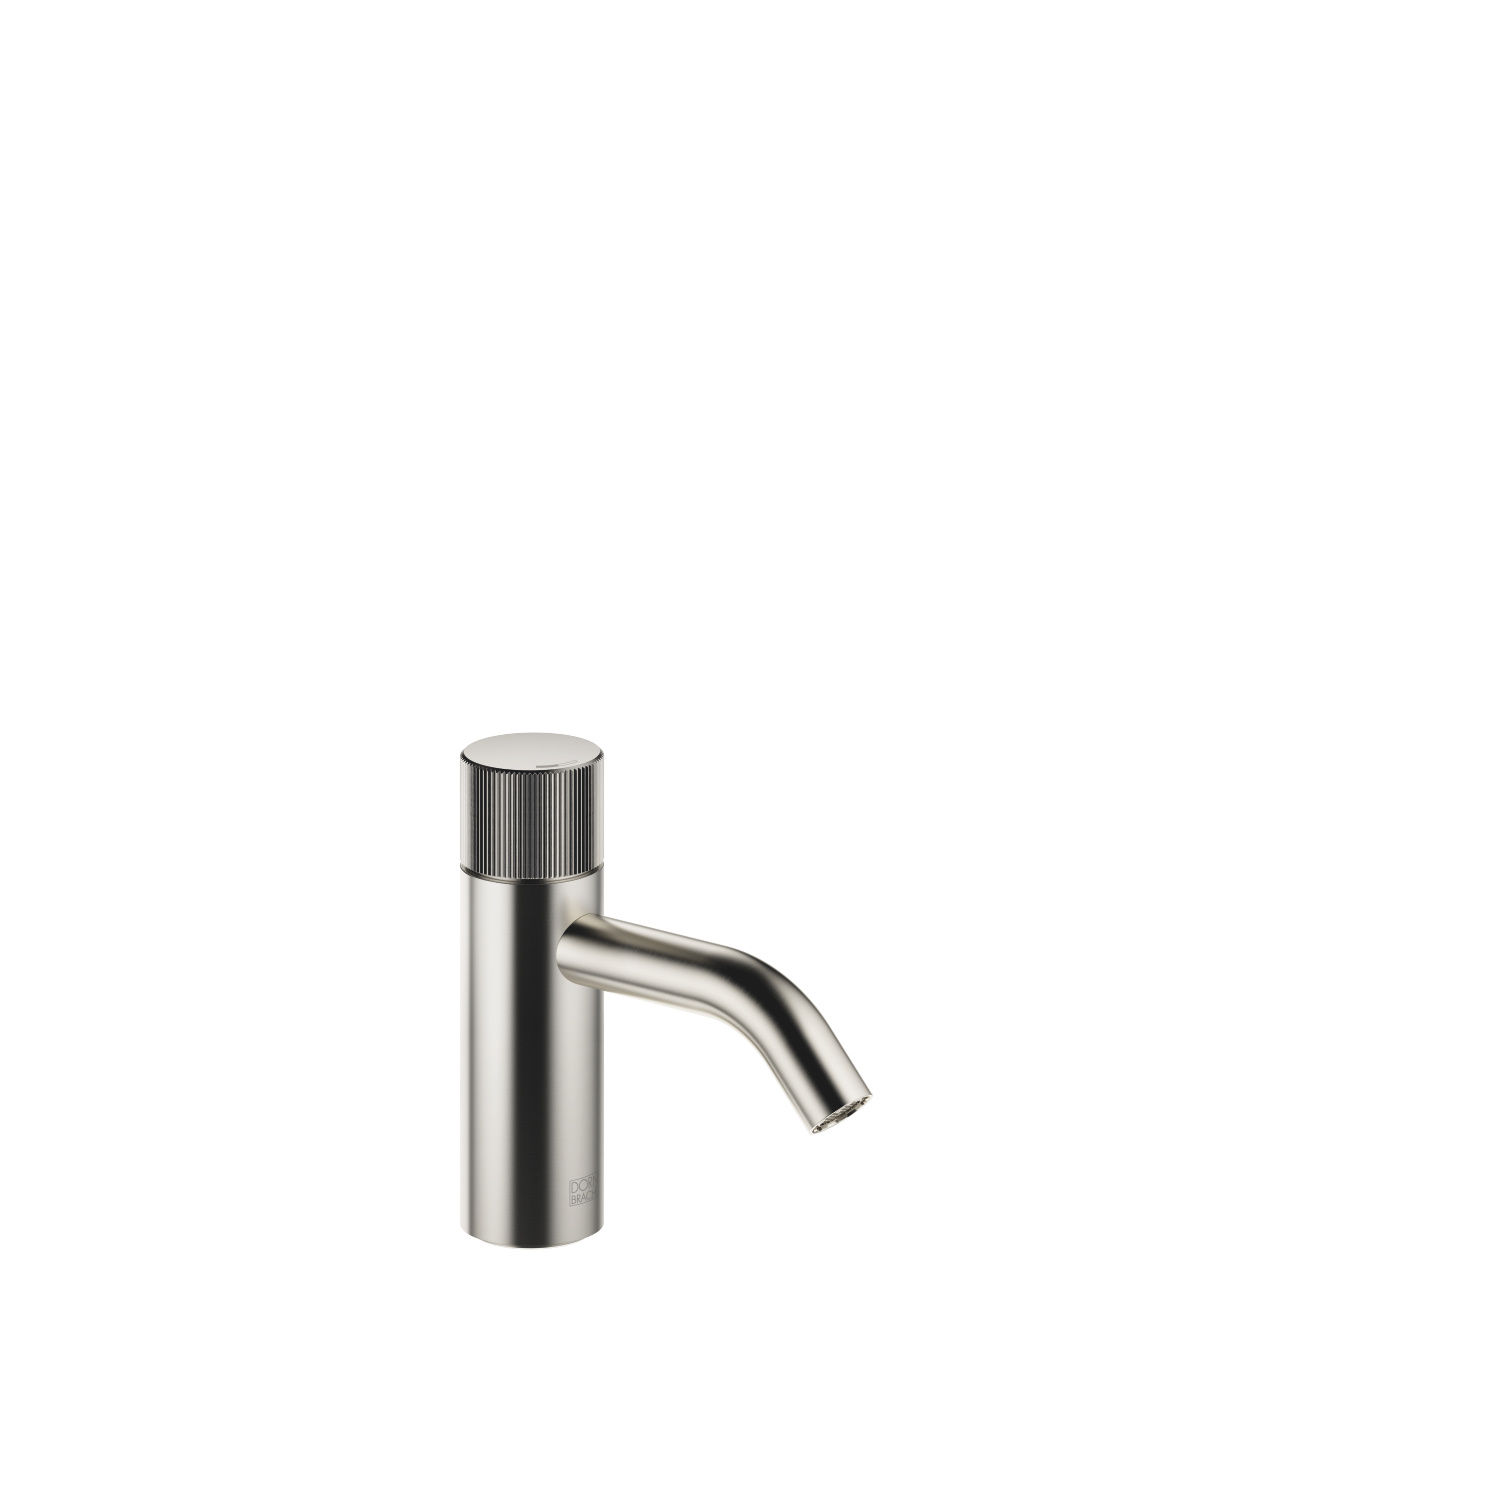 META PURE Single-lever basin mixer without pop-up waste - platinum matt - 33 525 664-06